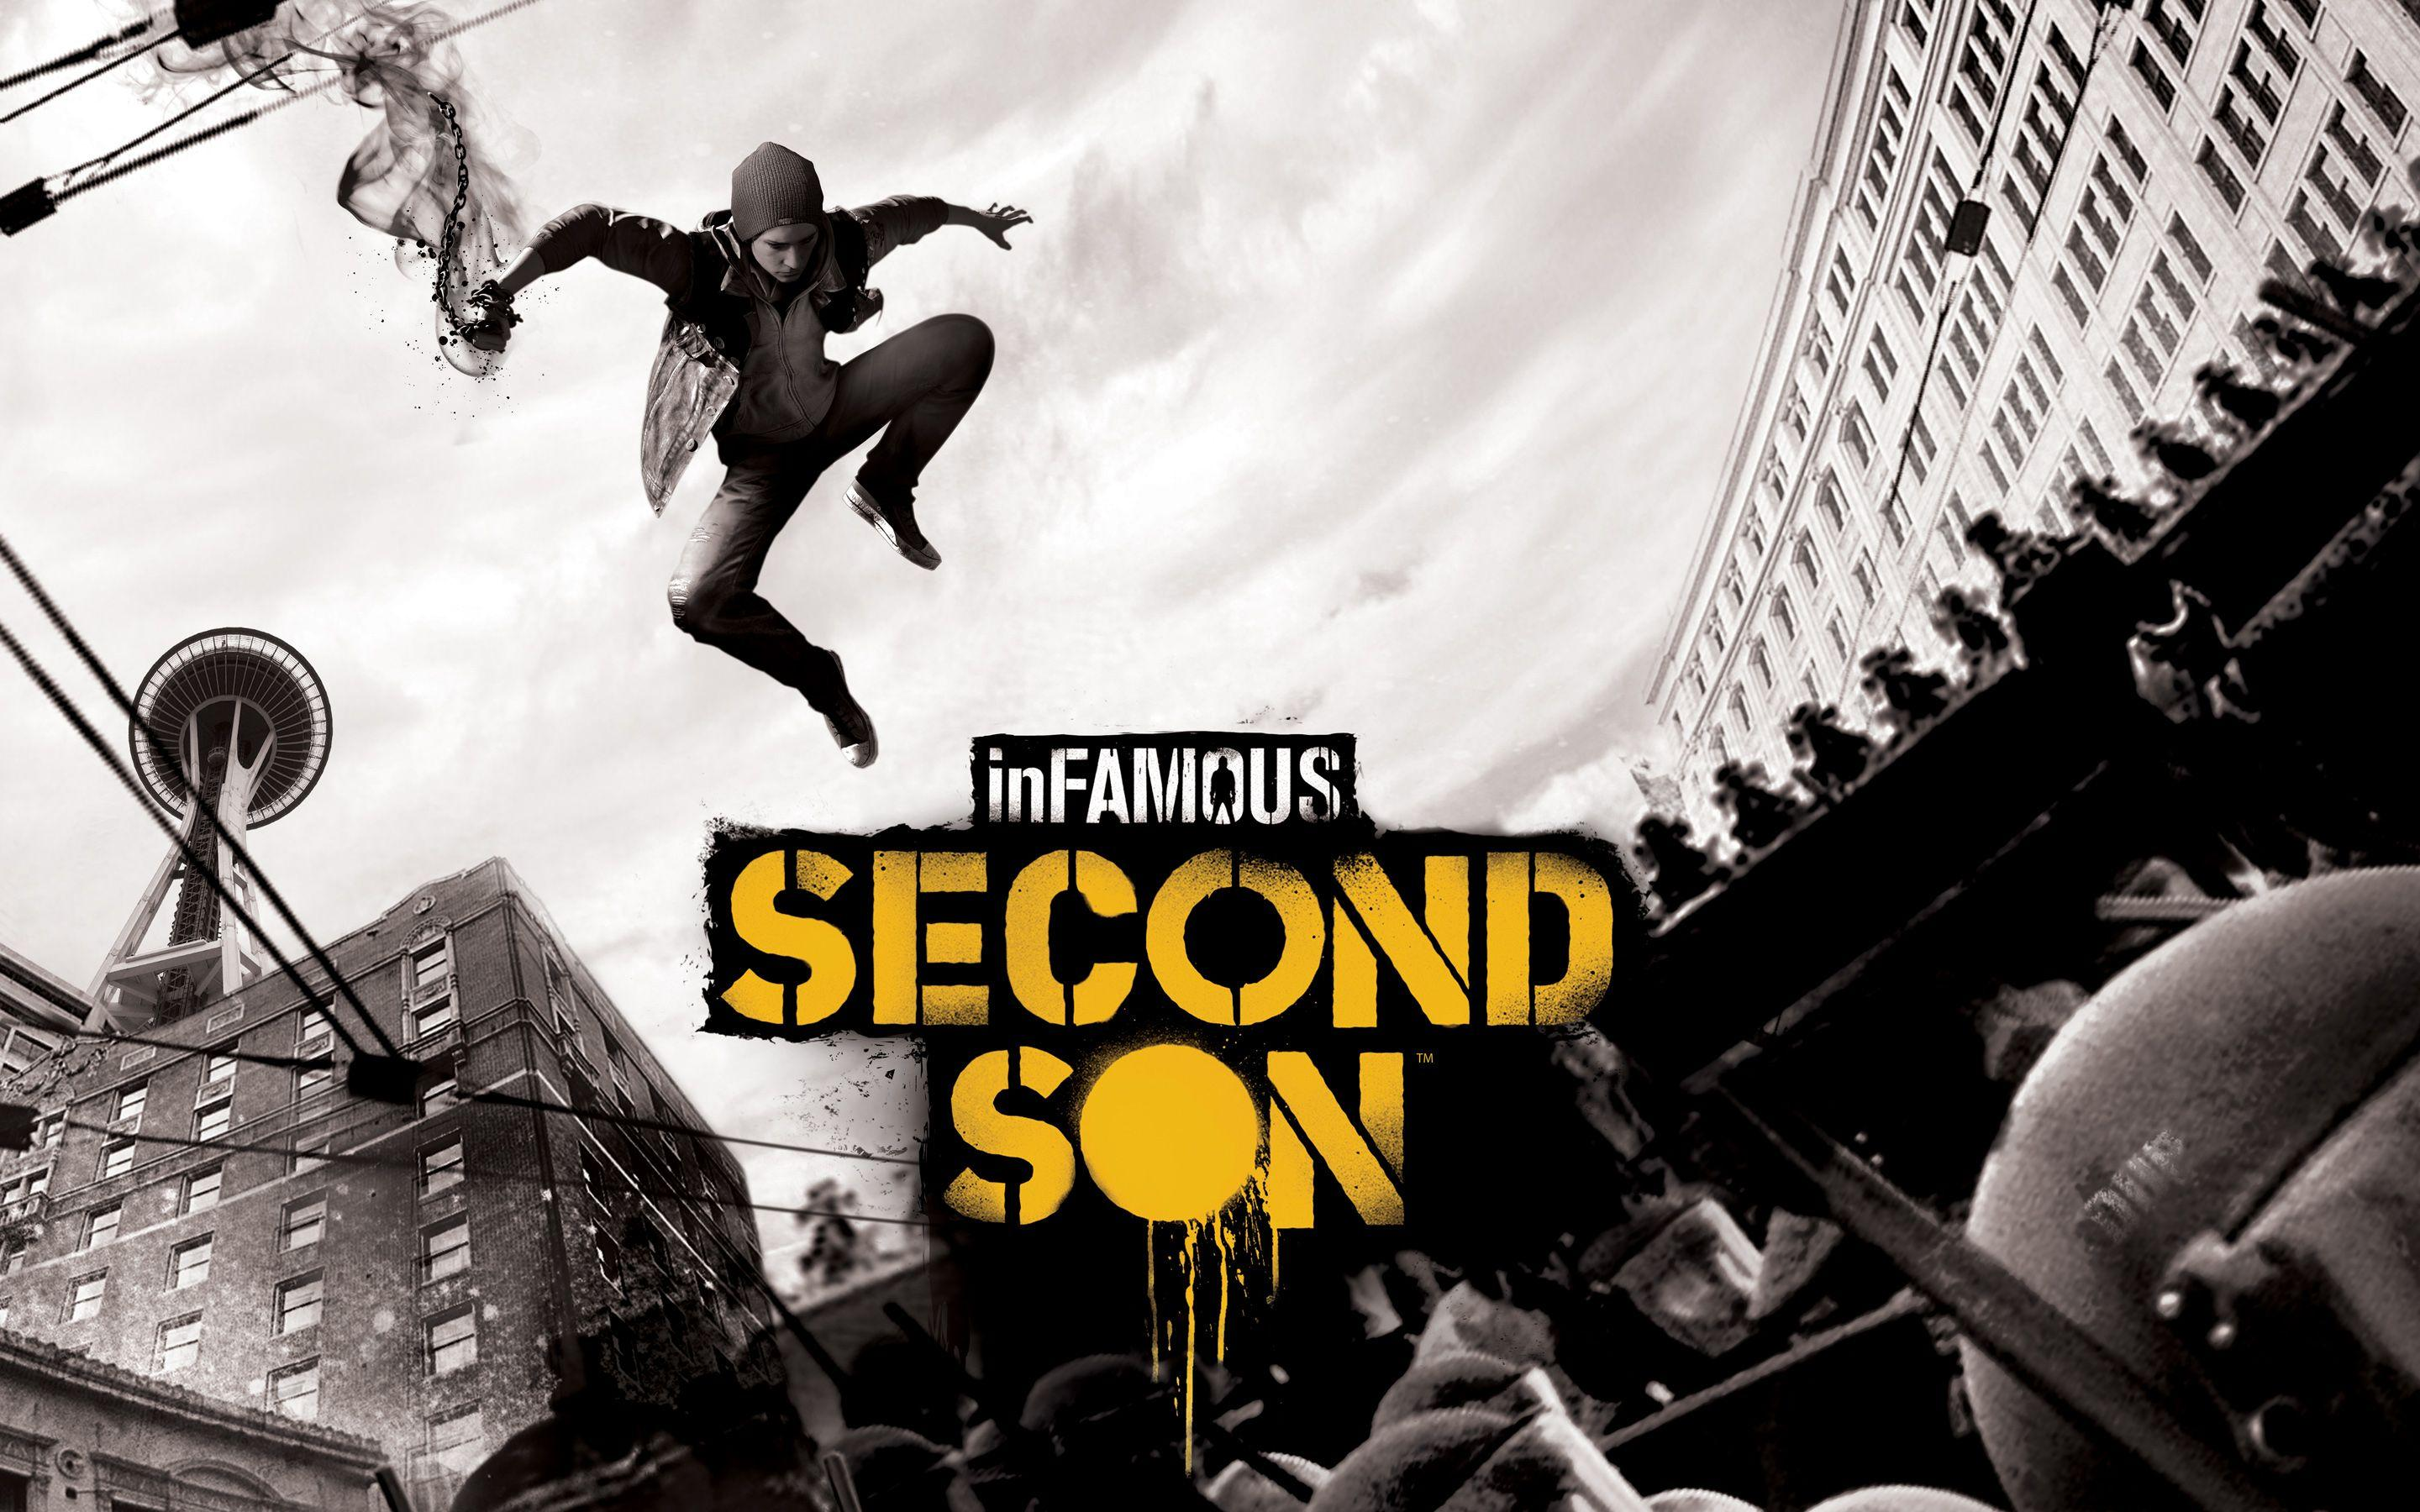 inFAMOUS Second Son Wallpapers | HD Wallpapers